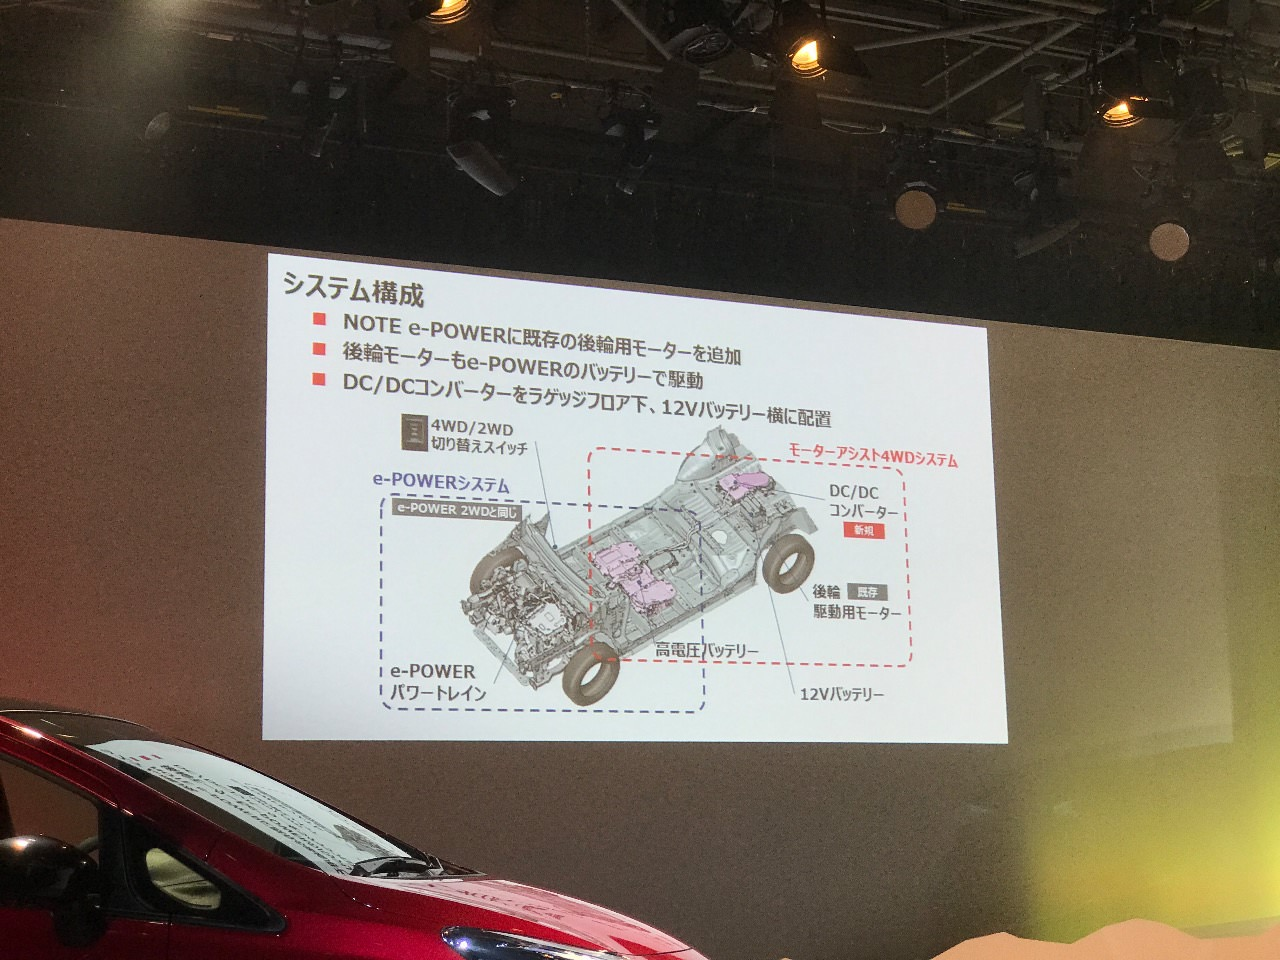 ノート e-POWER 4WD 10